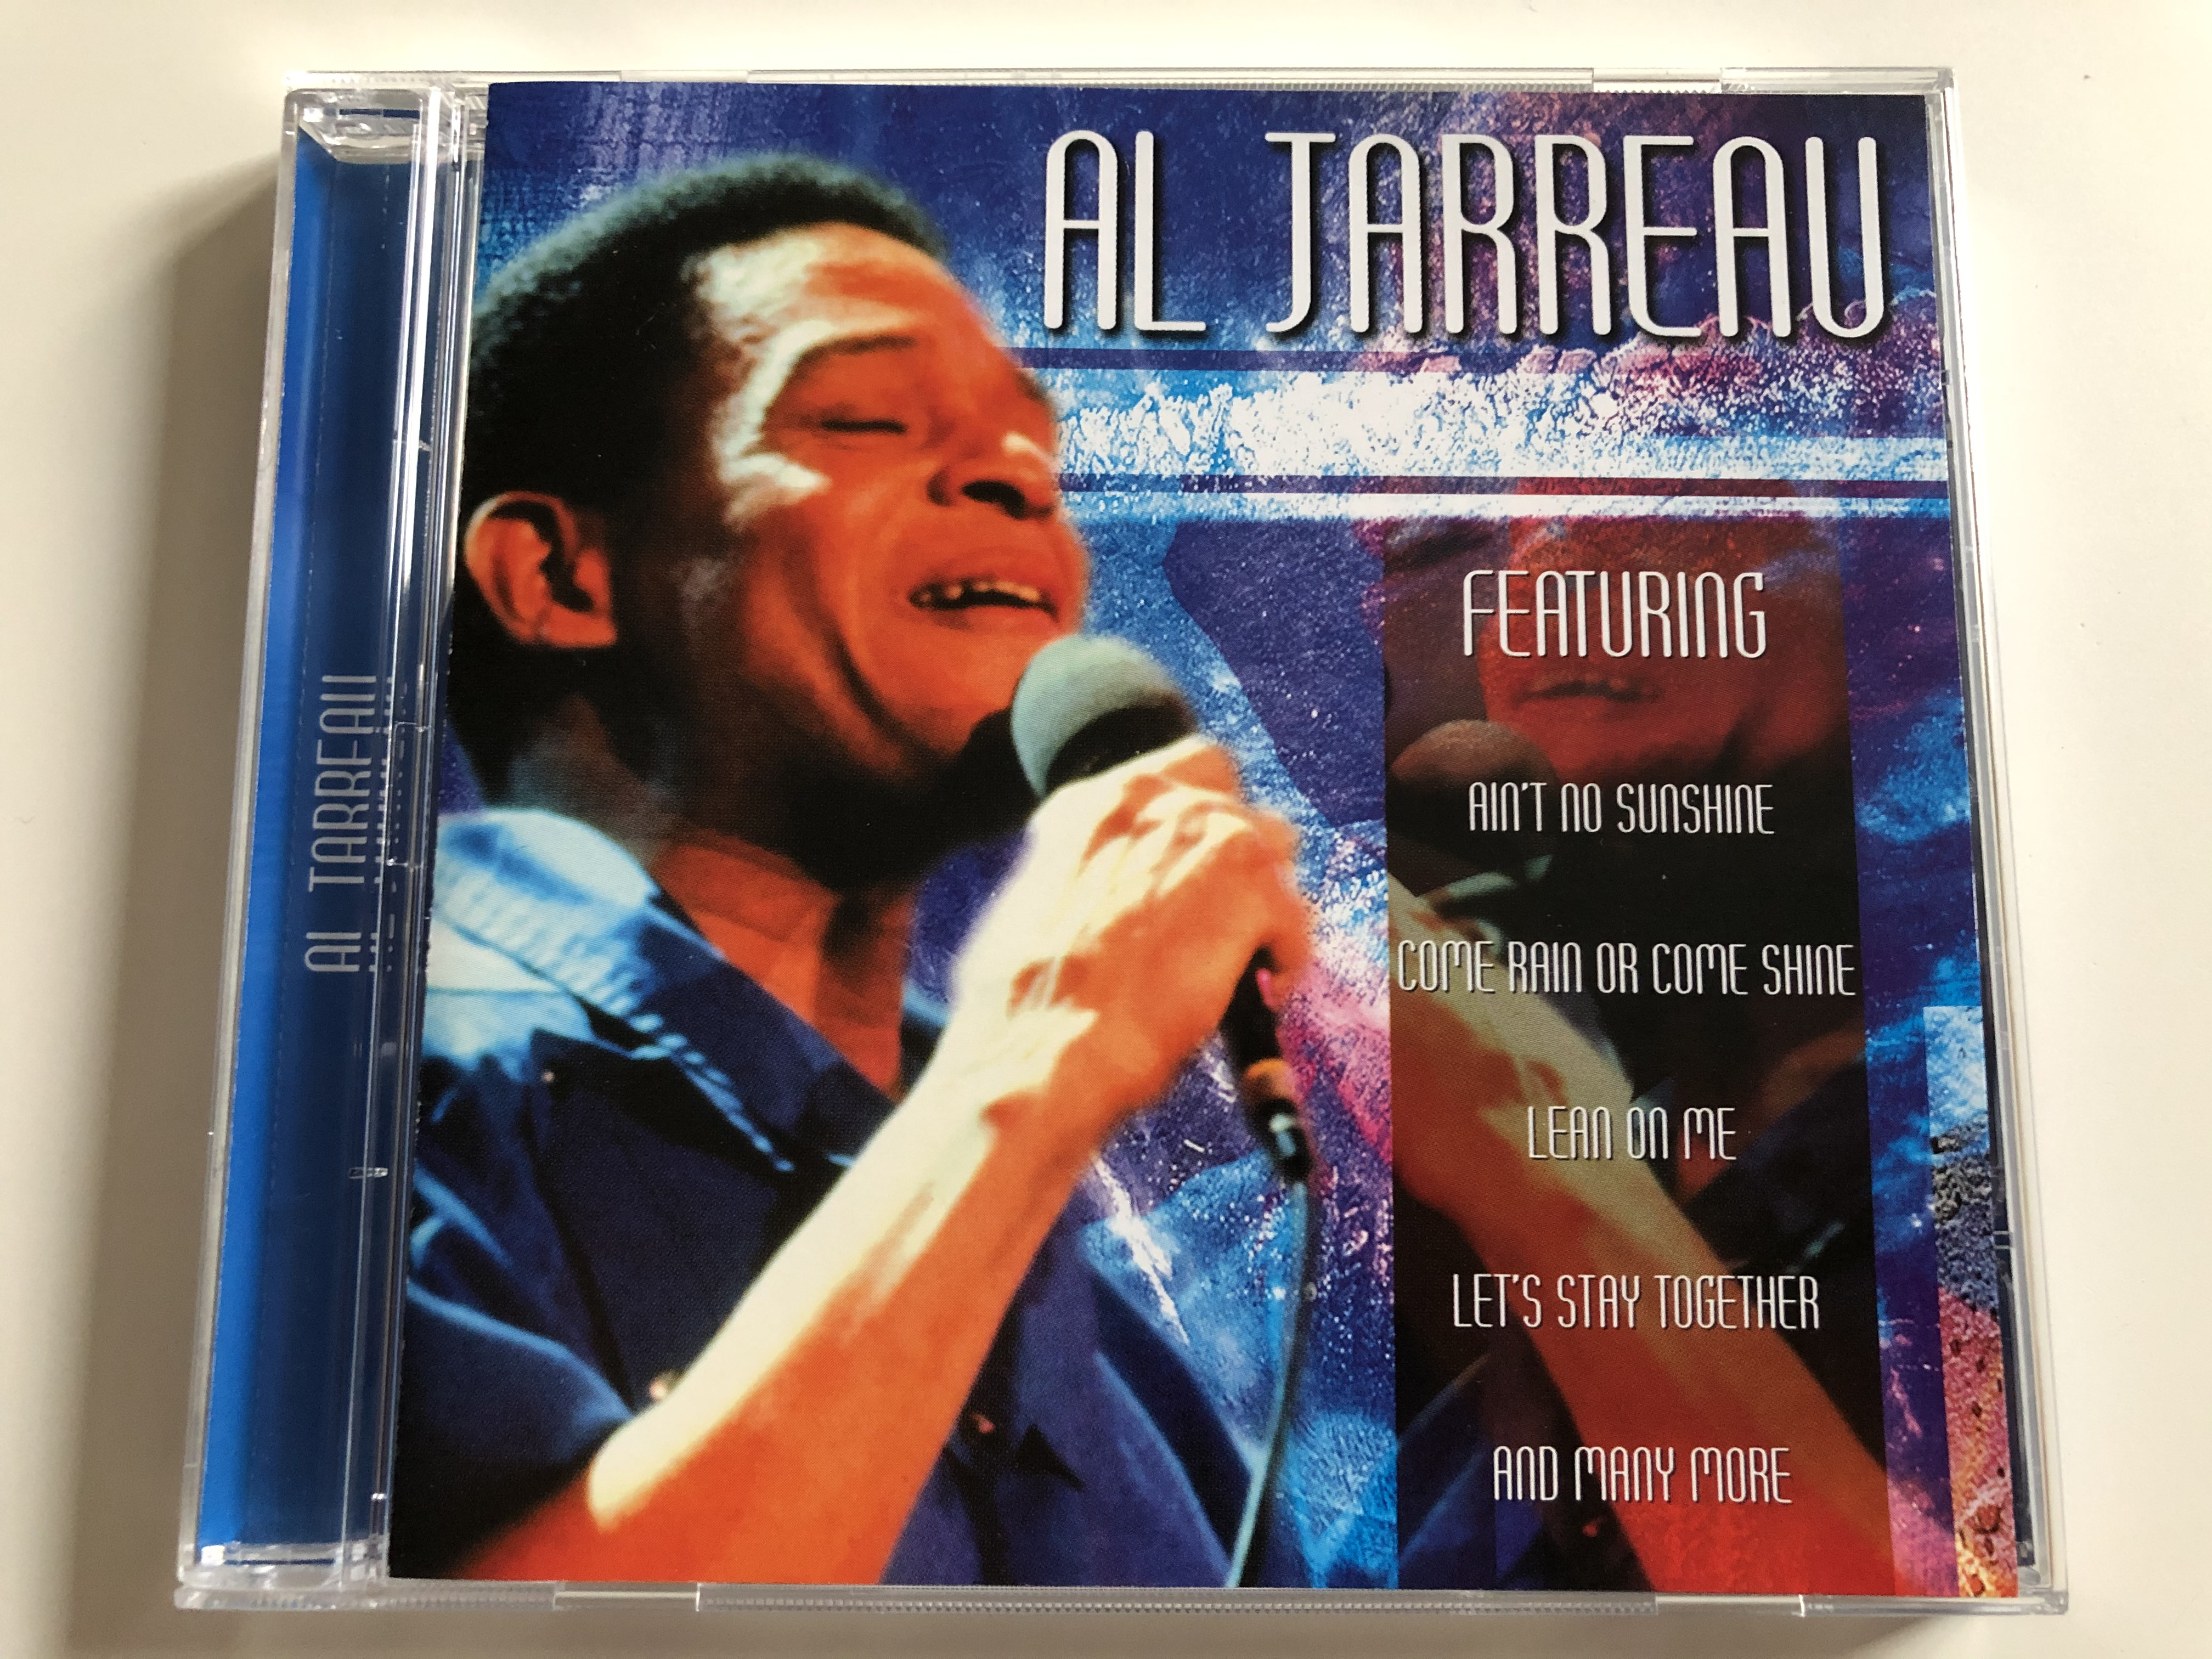 al-jarreau-featuring-ain-t-no-sunshine-come-rain-or-come-shine-lean-on-me-let-s-stay-together-and-many-more-going-for-a-song-audio-cd-gfs318-1-.jpg